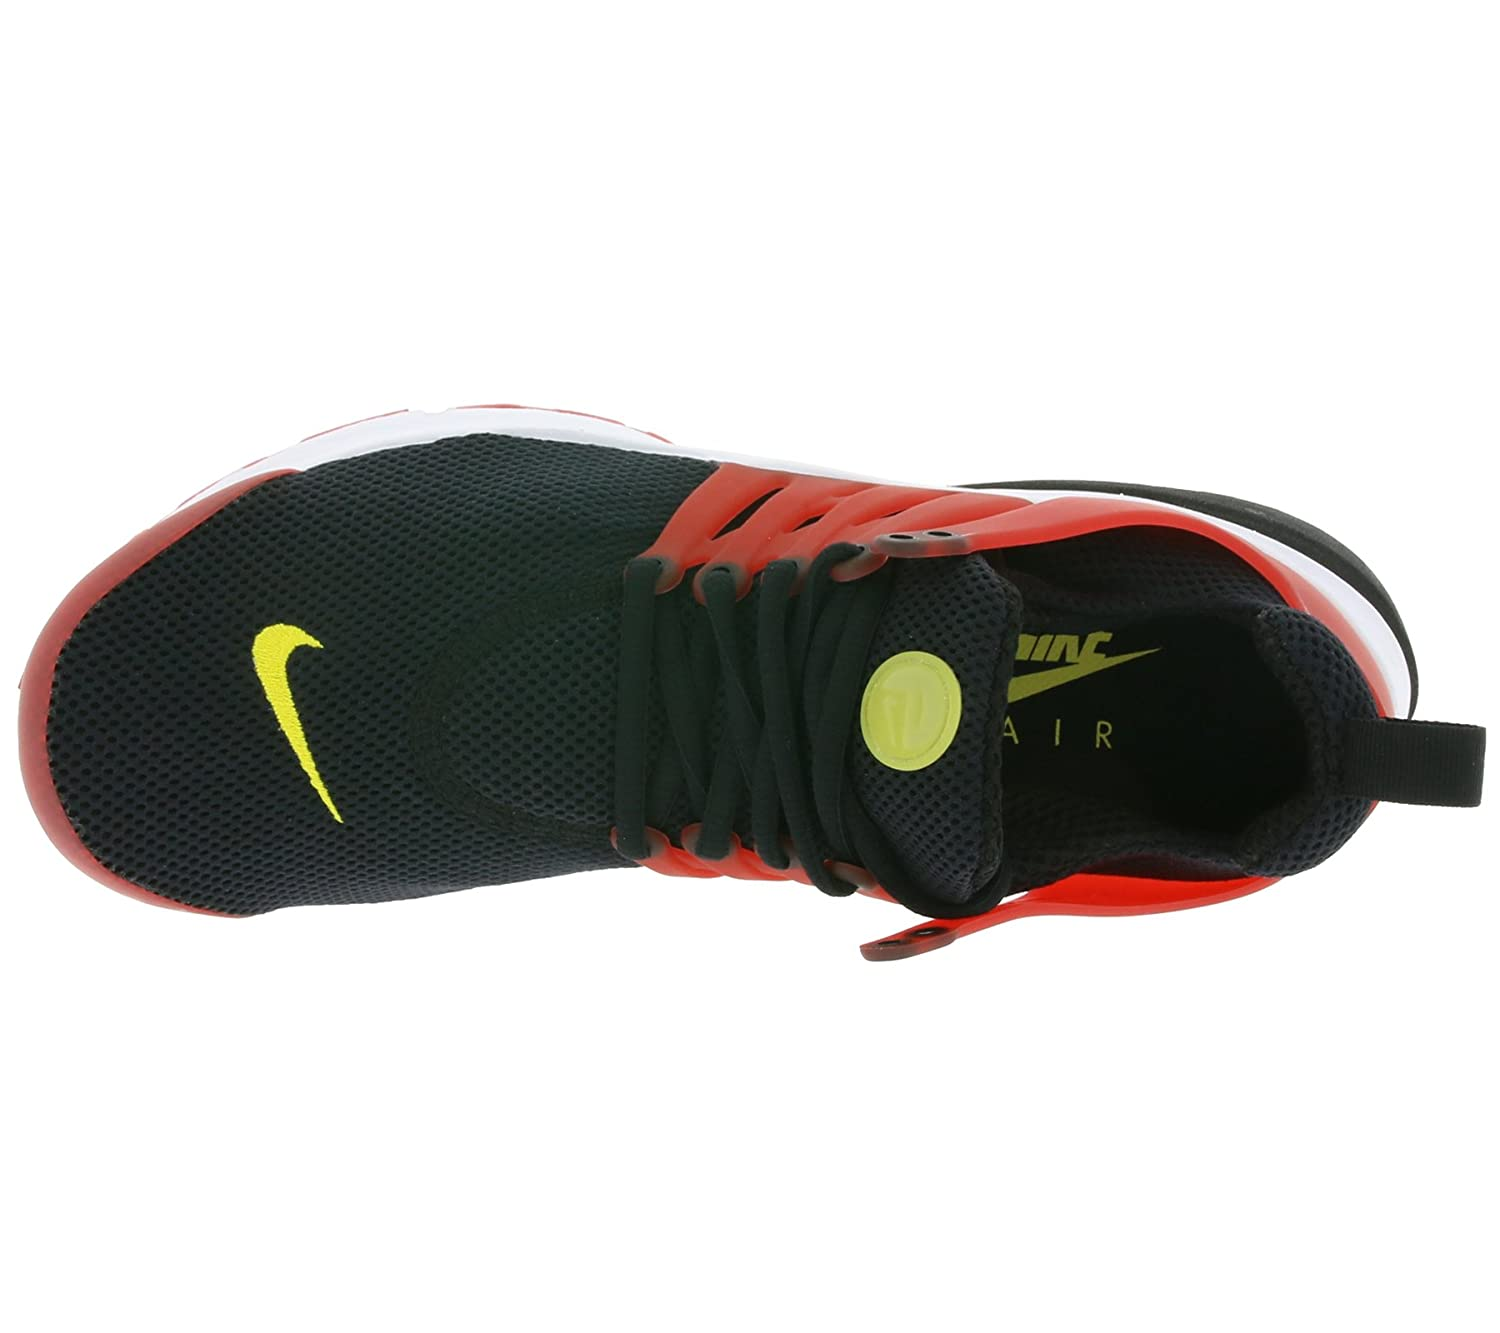 NIKE Men's Air Presto Yellow/University Essential B0081R2V10 12 D(M) US|Black/Tour Yellow/University Presto Red/White 0d55c8